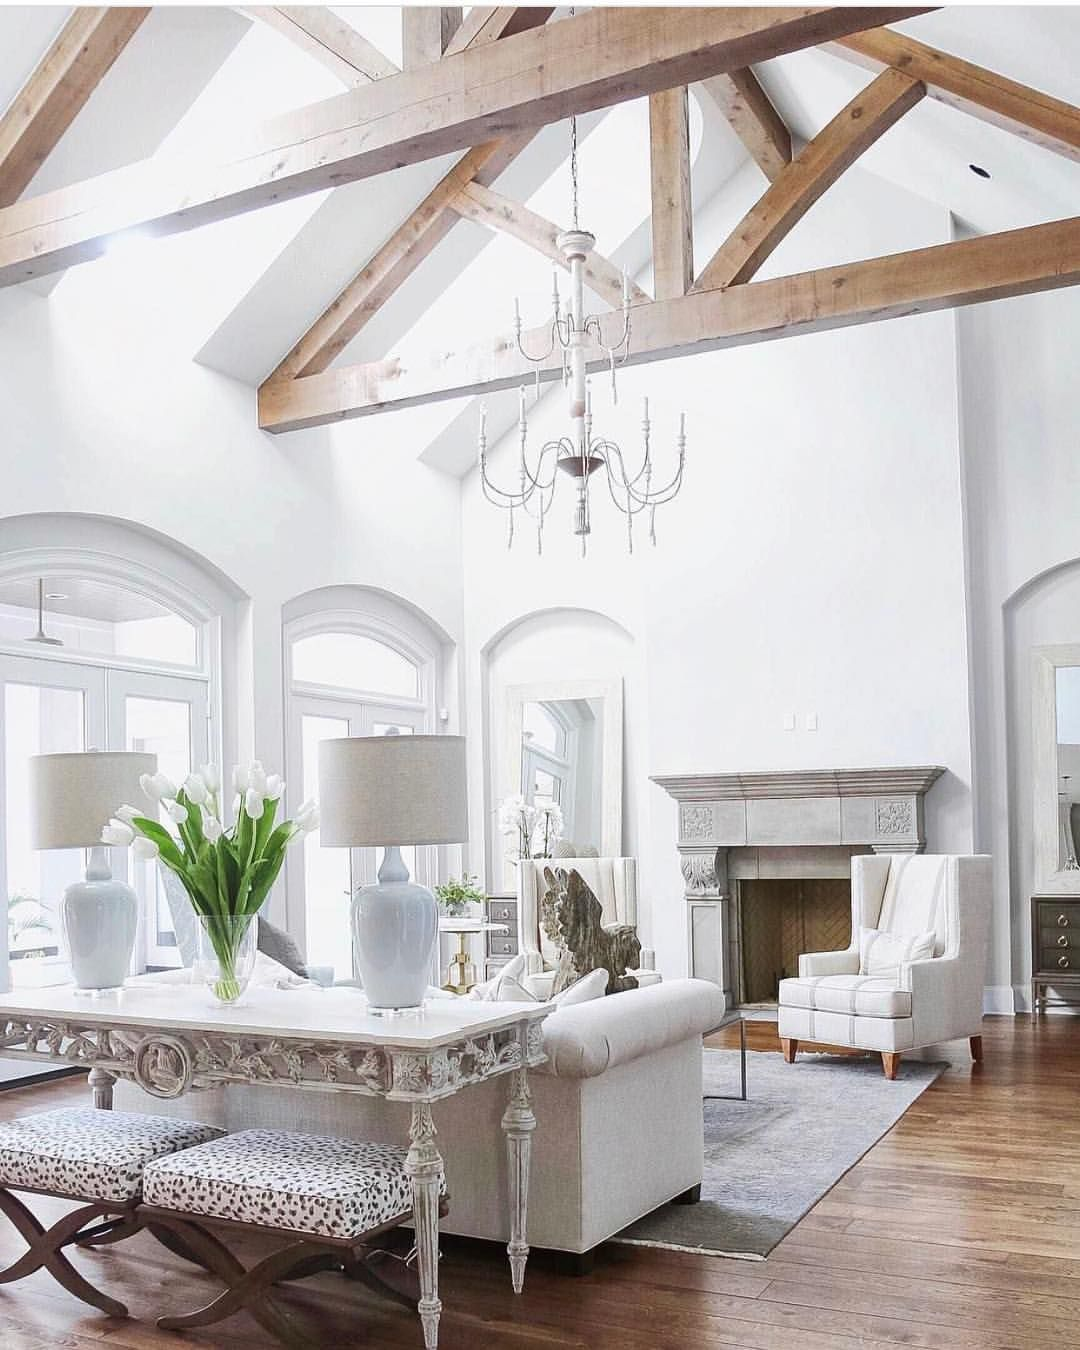 80 Vaulted Wood Beam Ceilings Ideas In 2020 Wood Beams